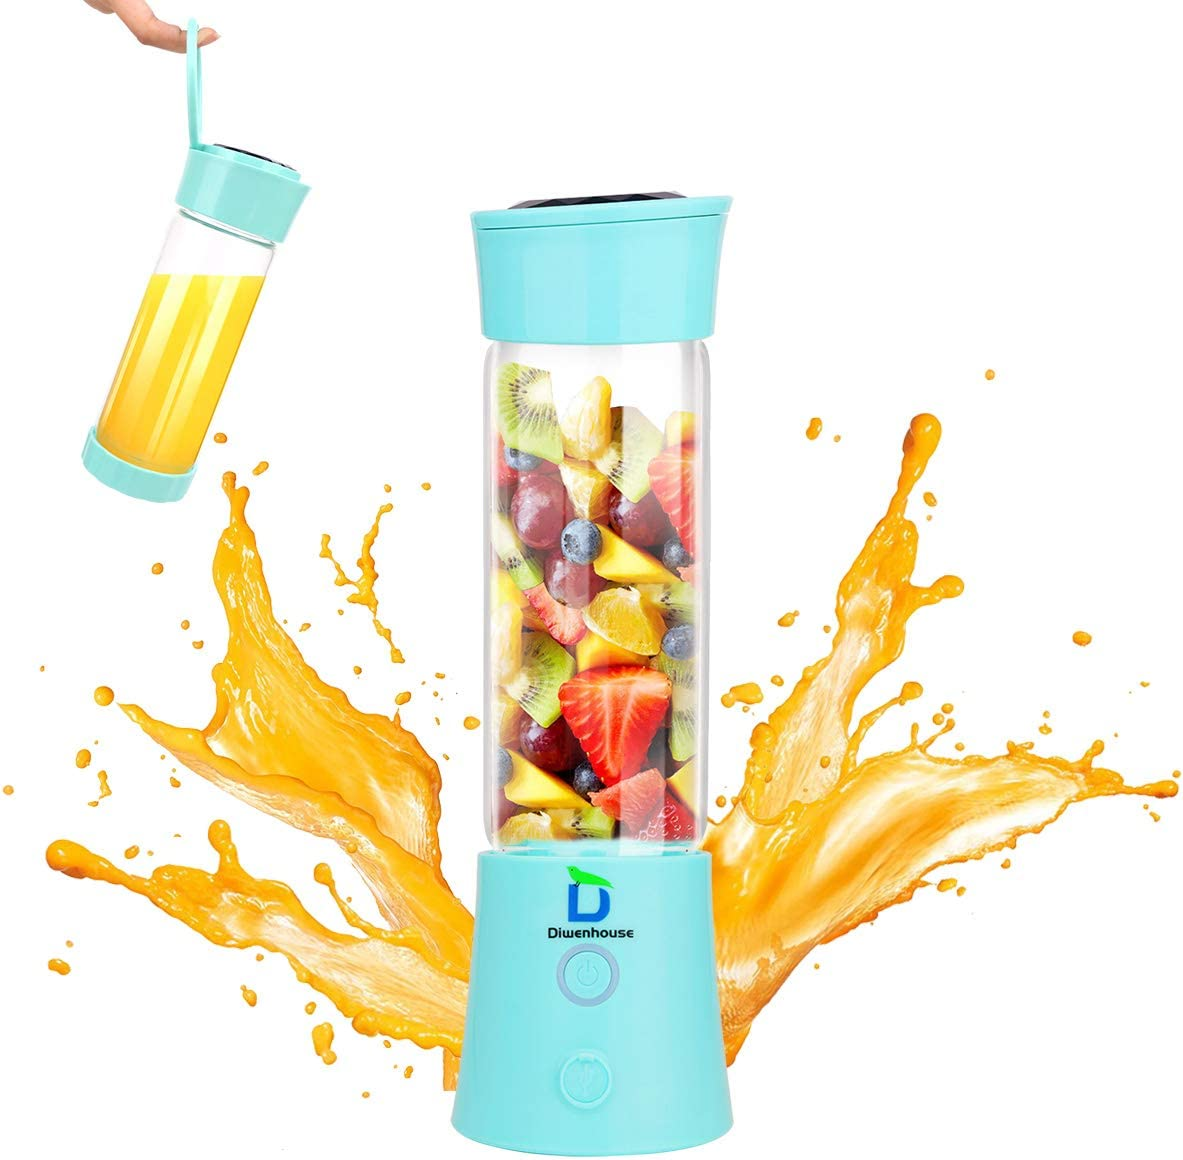 Diwenhouse Portable Blender, Personal Size Blender for Shakes and Smoothies Mini Juicer Cup 16 oz USB Rechargeable Battery Wireless Blue